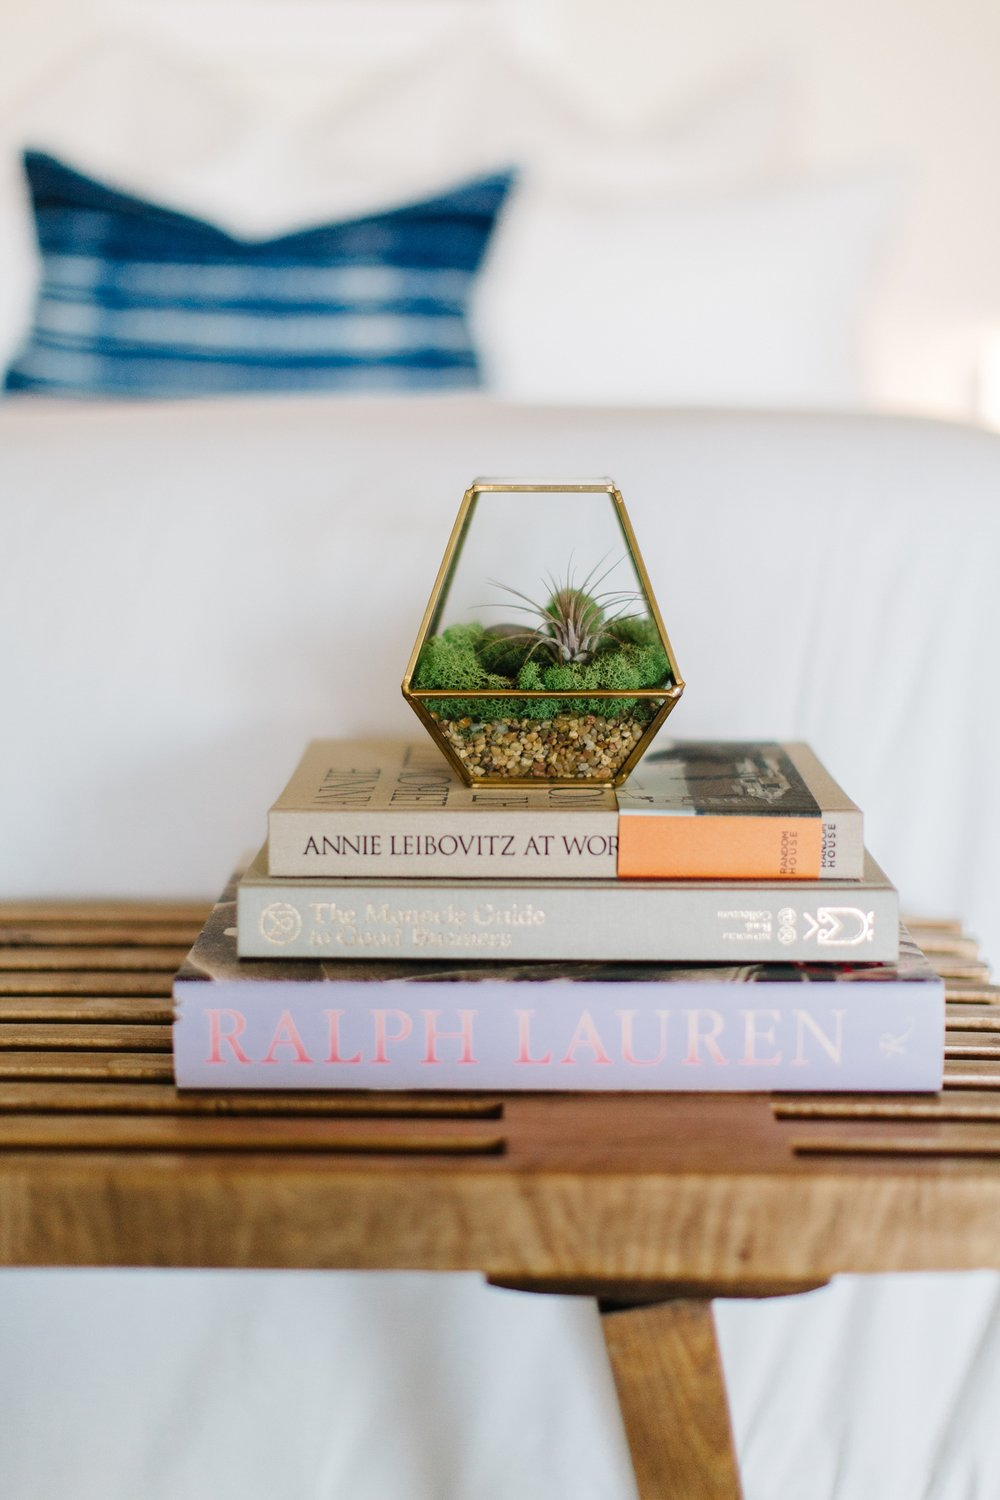 Symmetry continues to play a huge role in this space. Atop this teak bench found at an antique mall are some favorite books along with a miniature terrarium housing an air plant.